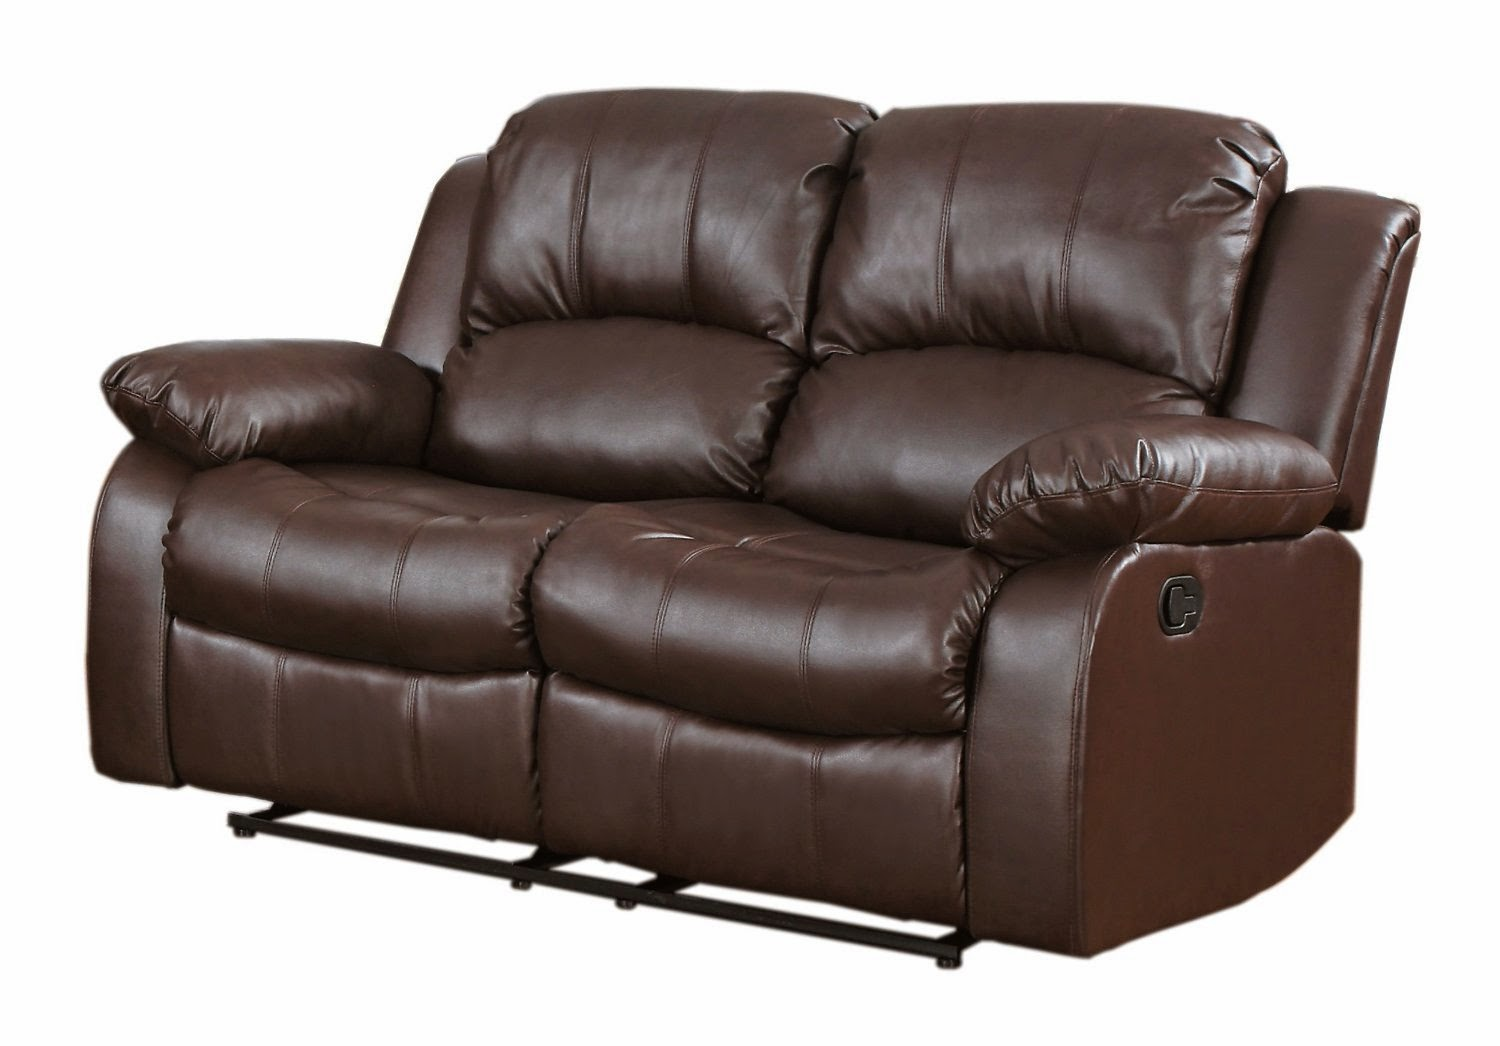 place to buy recliner sofa 2 seater electric recliner leather sofa